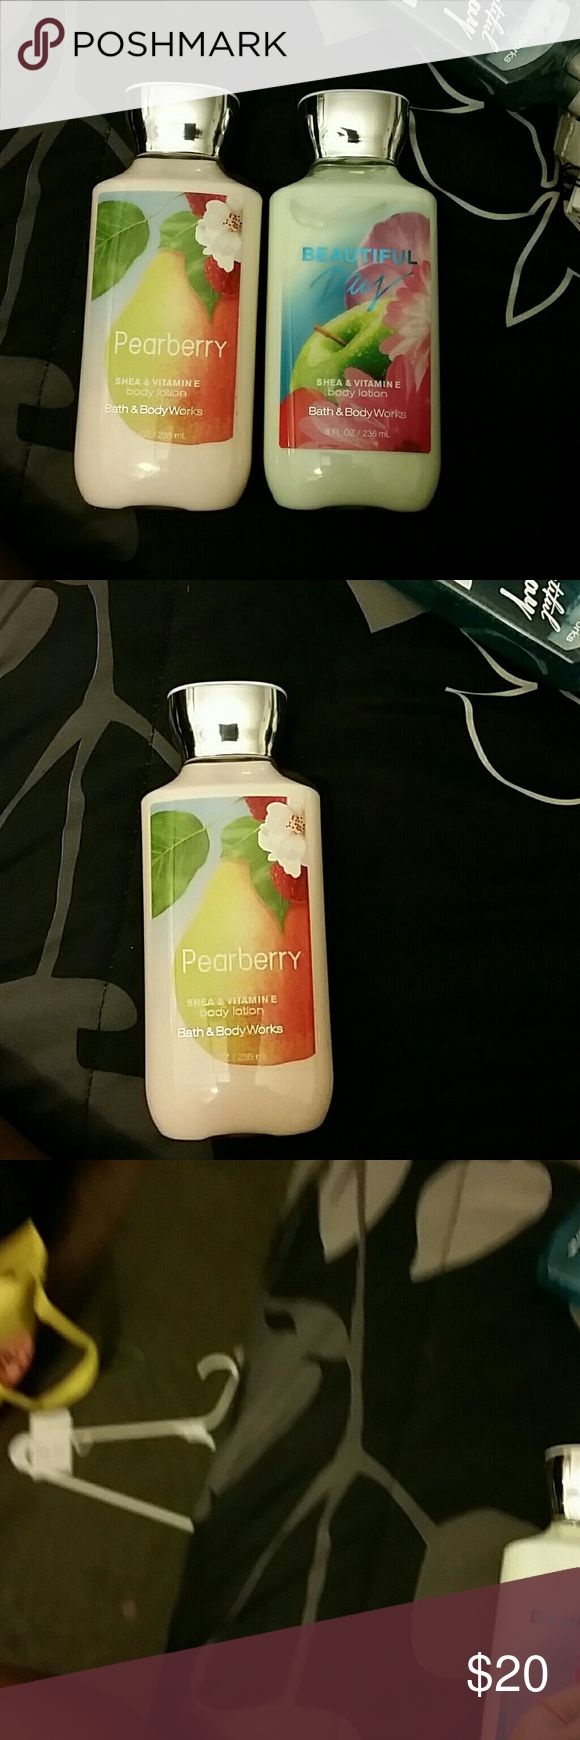 Bath n body lotion 2 new lotions 1 new Beautiful day 1 new pearberry Bath n body Works  Other